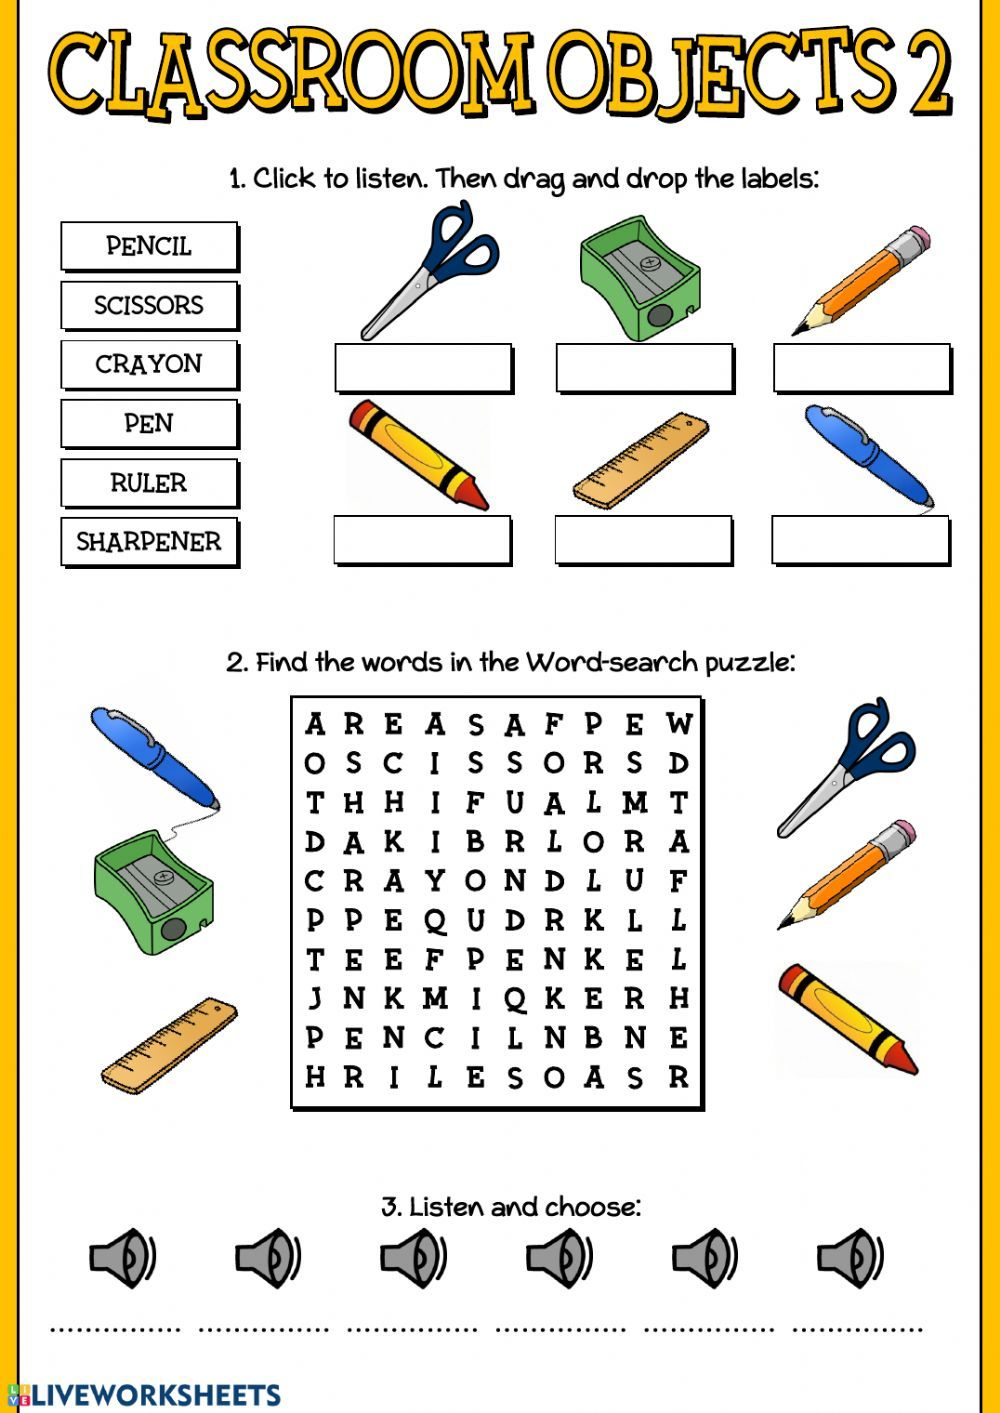 Classroom objects 2 - Interactive worksheet   English language learning  activities [ 1413 x 1000 Pixel ]